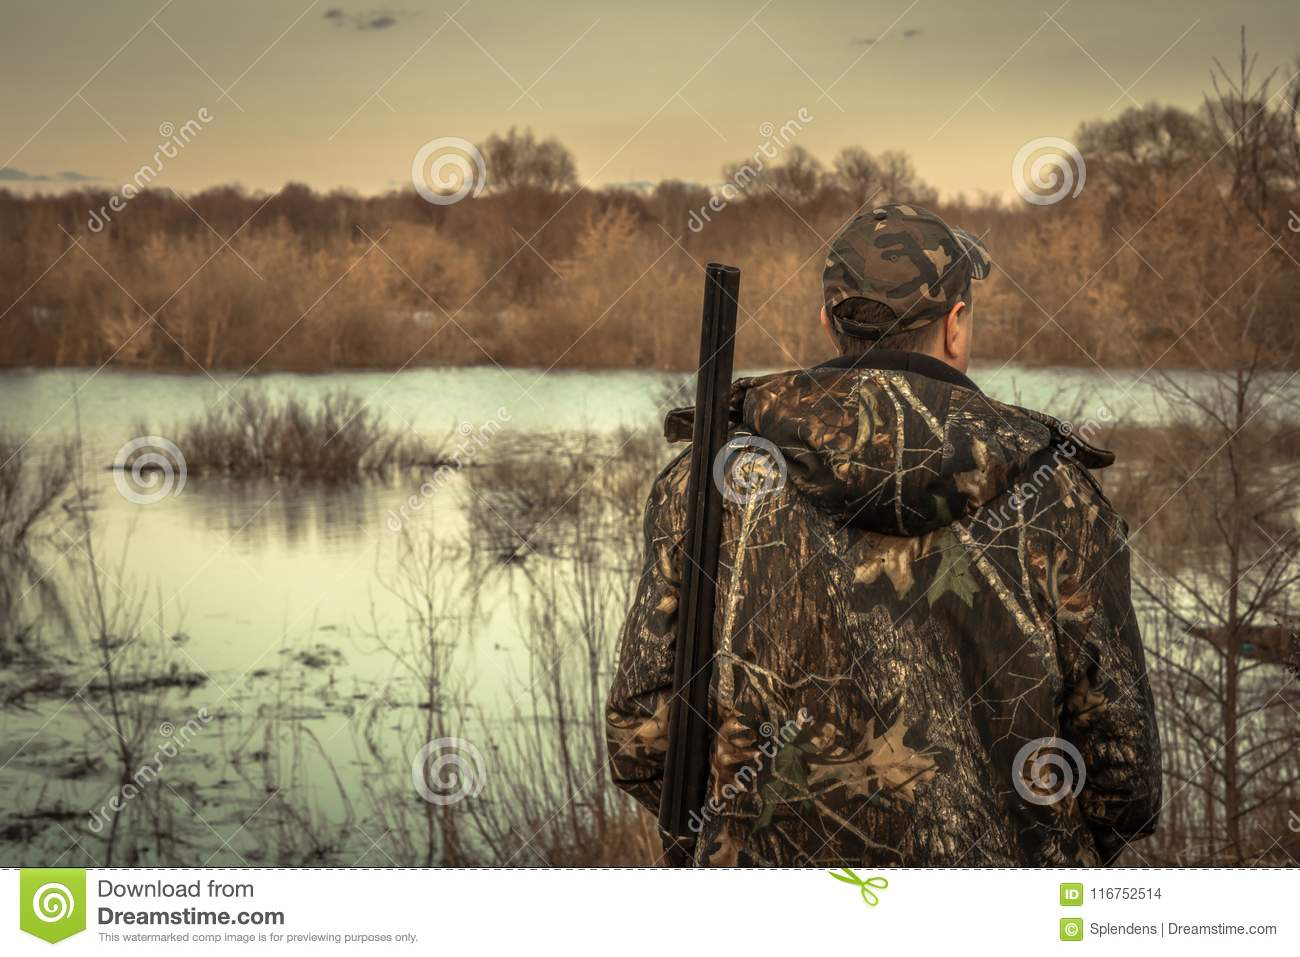 Hunter man shotgun camouflage exploring flood river hunting season rear view sunset